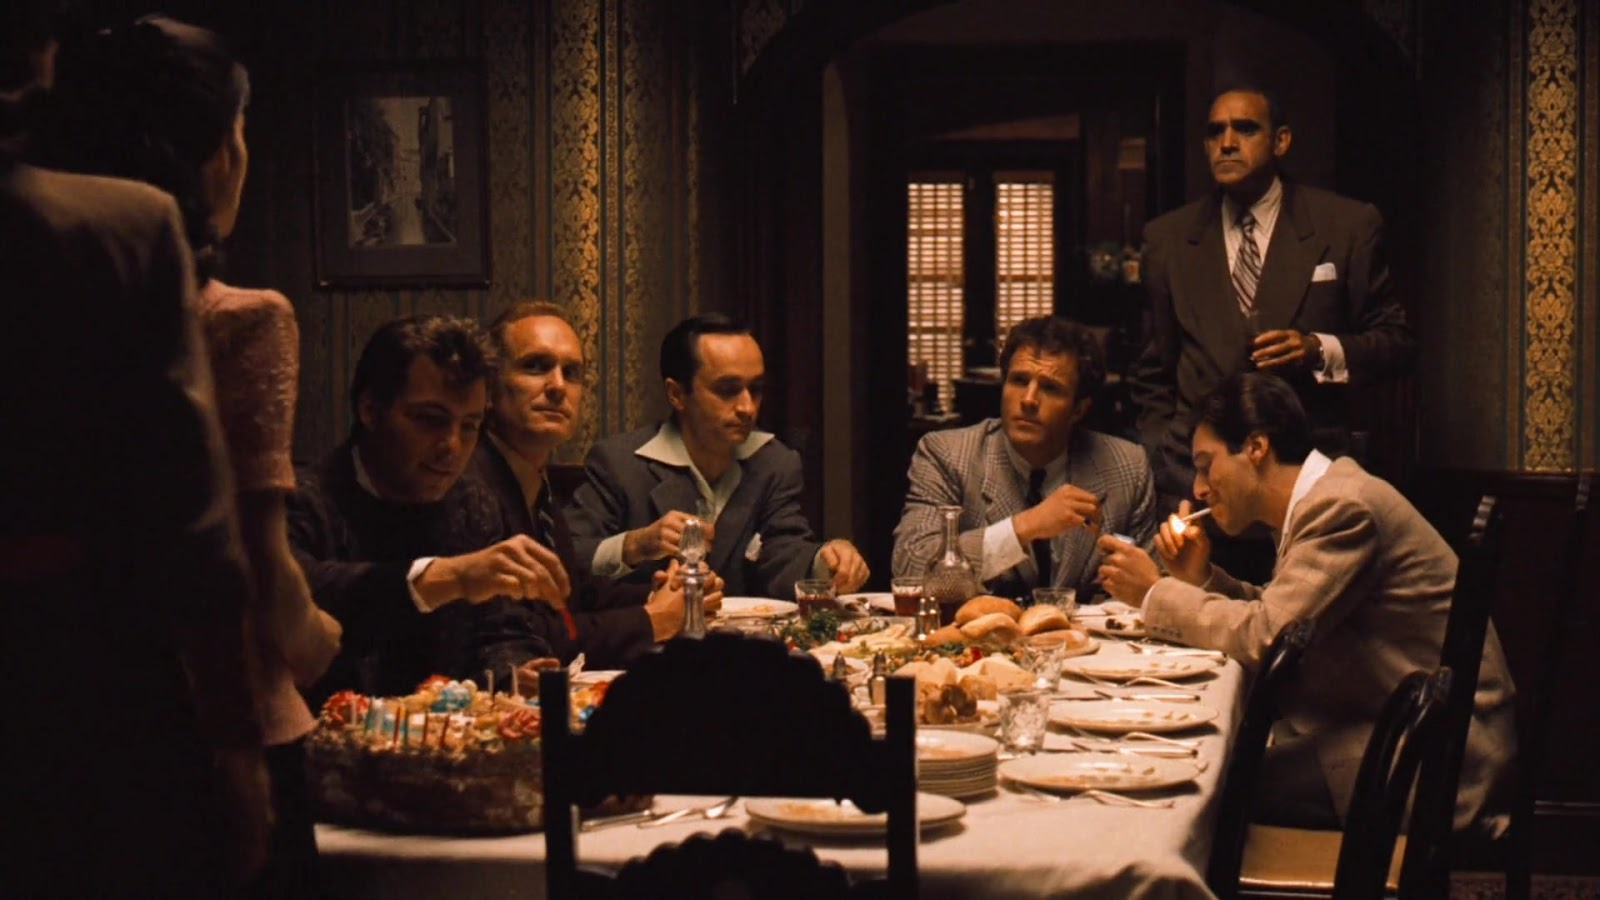 Reunion birthday party from The Godfather Part II